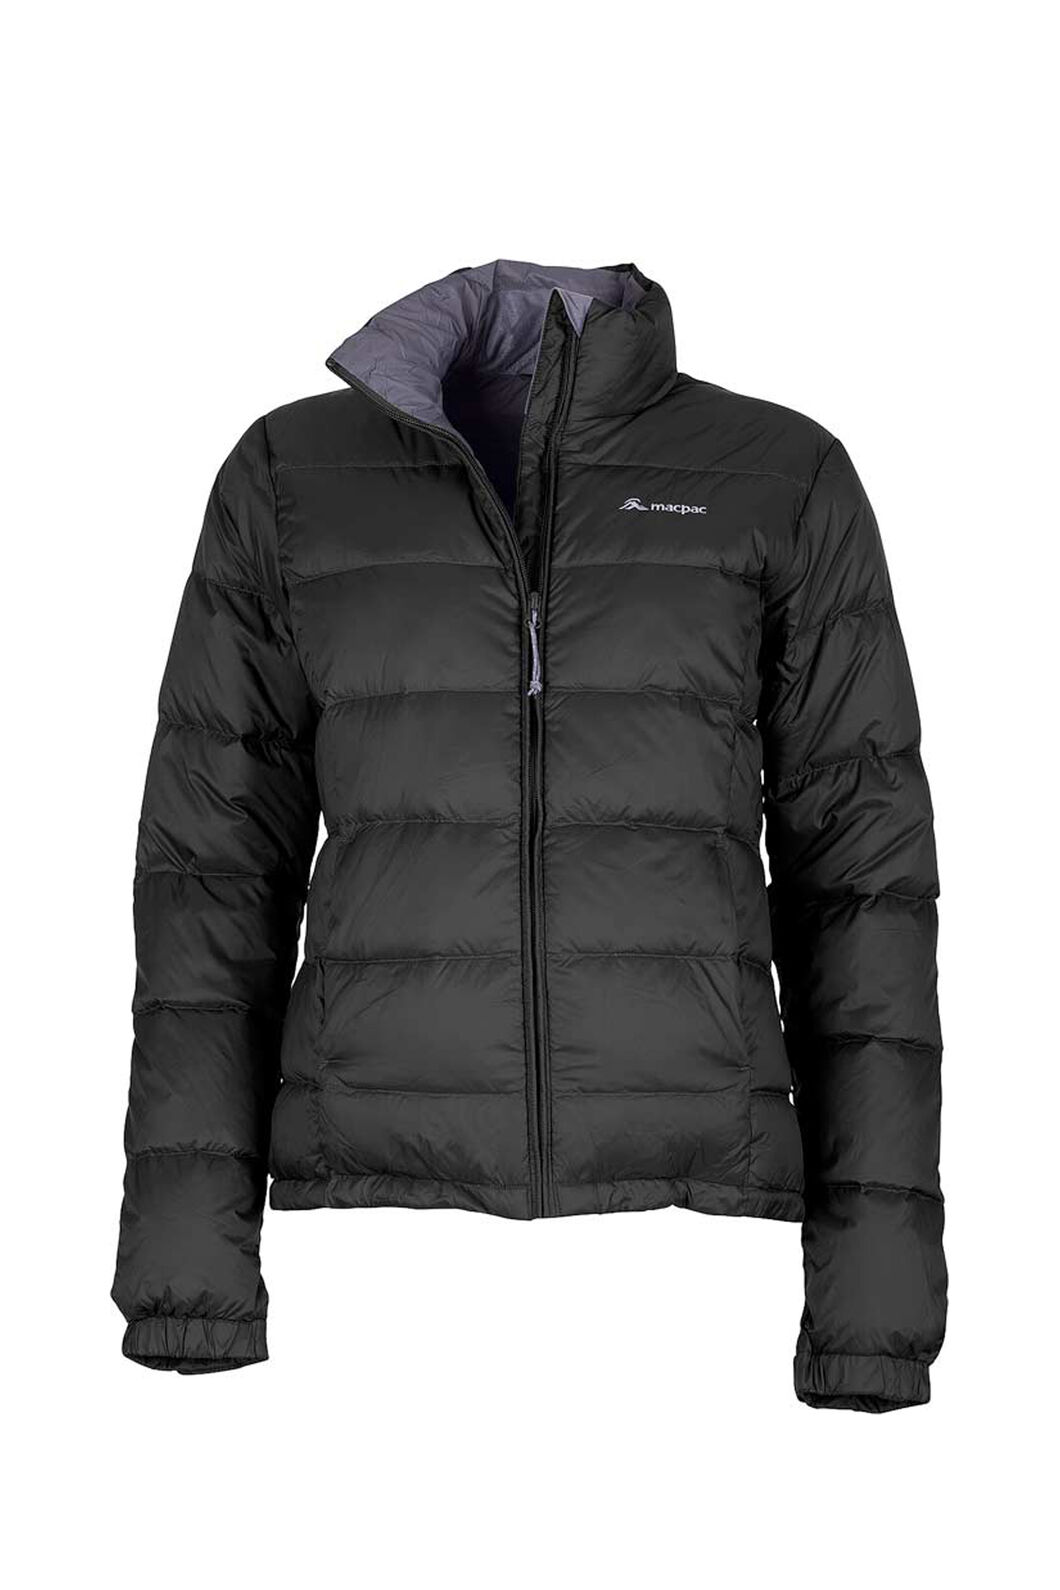 Macpac Halo Down Jacket - Women's, Black, hi-res